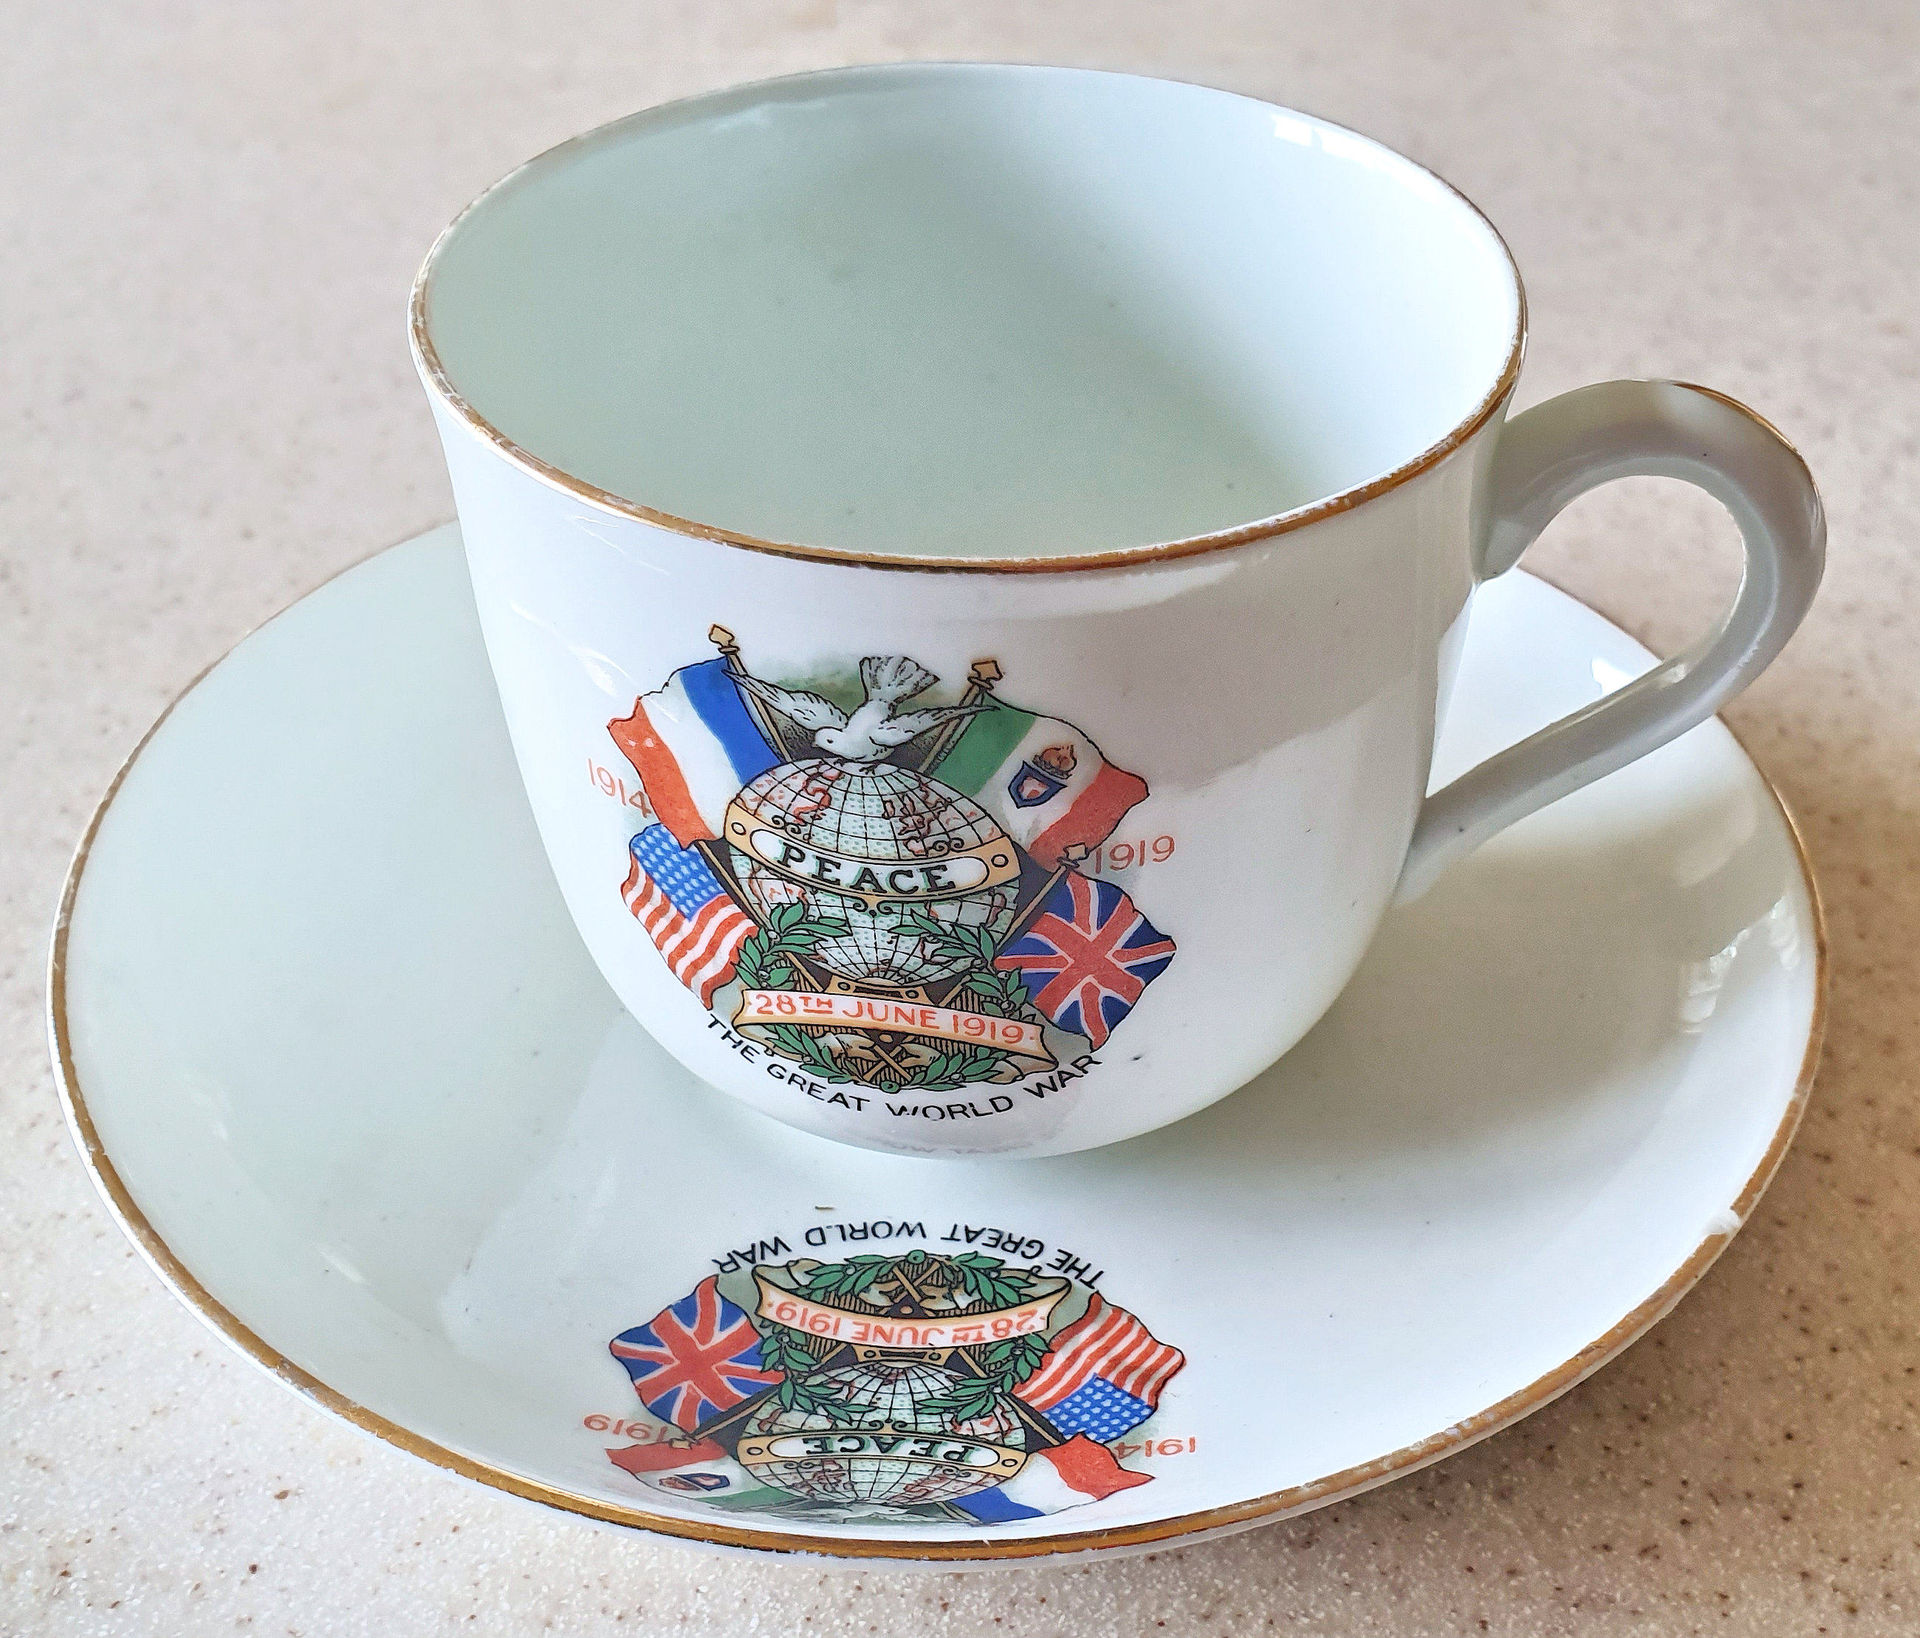 Commemorative cup and saucer from the Peace Celebrations in Bishopdale, 1919